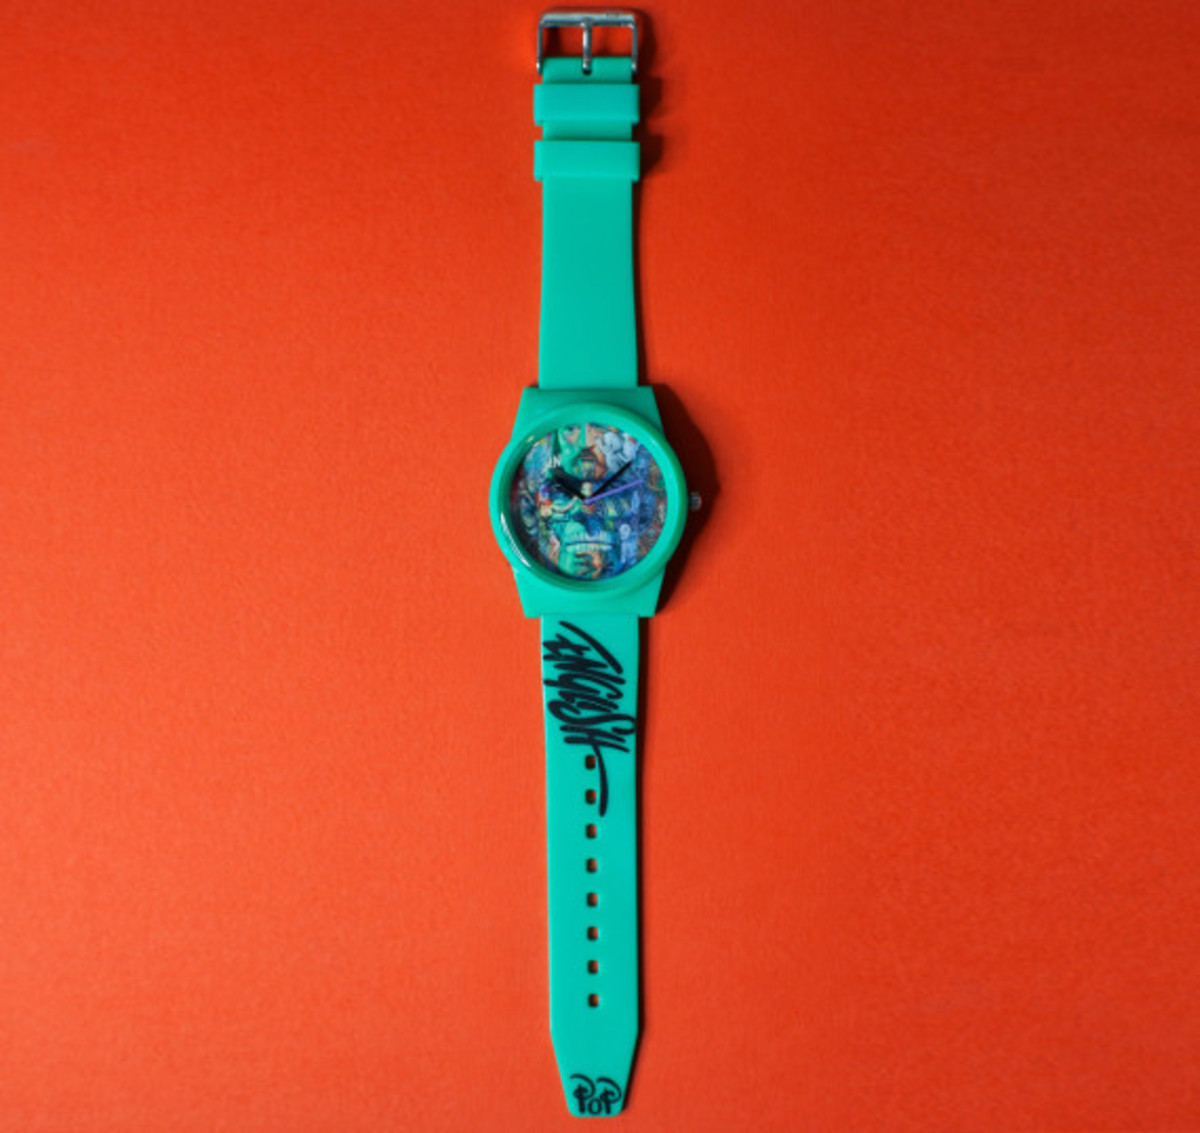 flud-ron-english-fall-2013-watch-collection-04